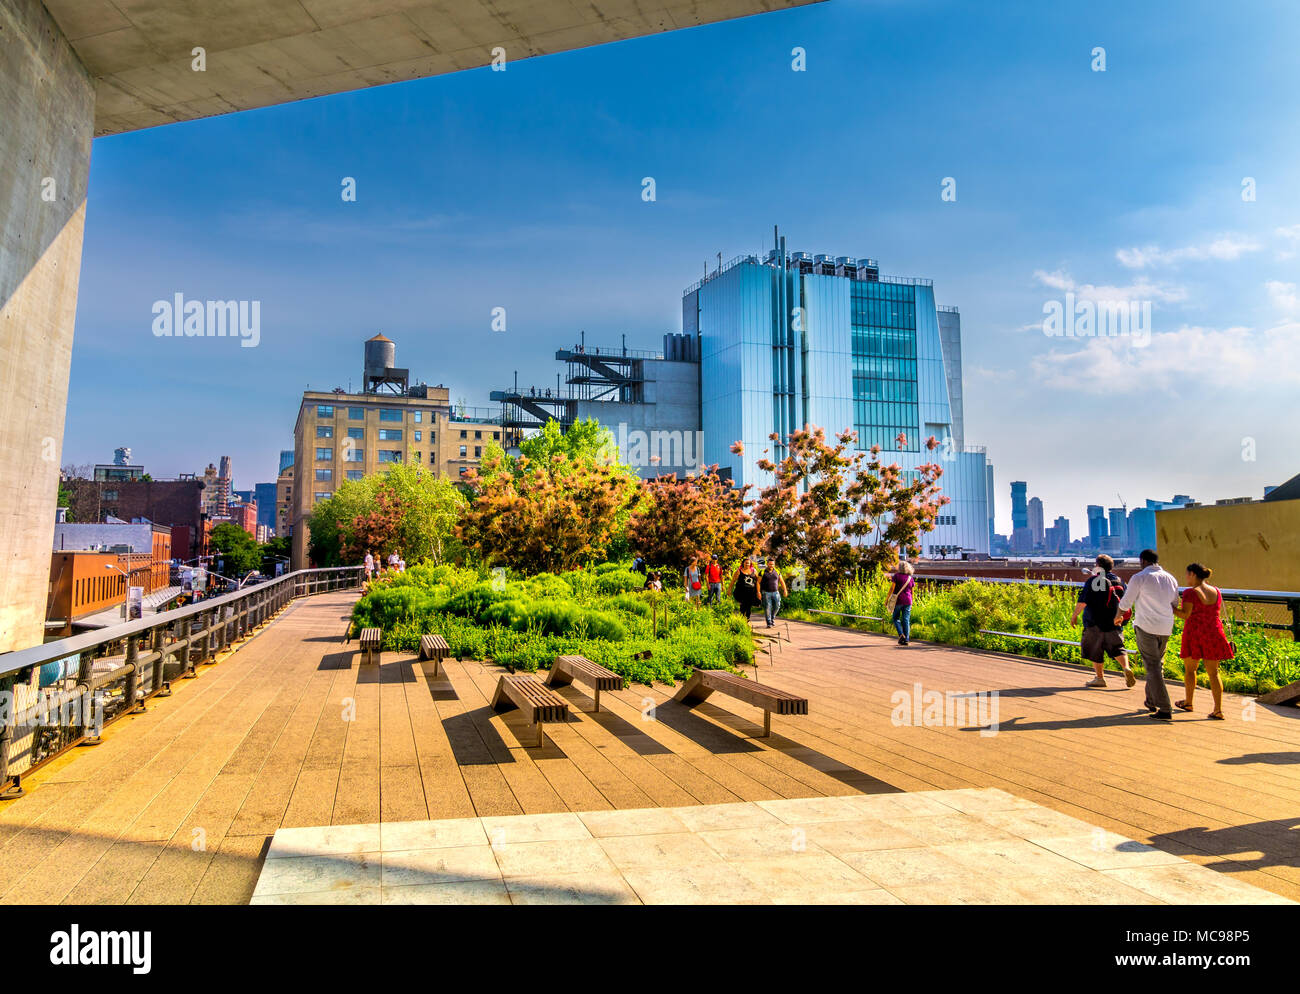 Manhattan, New York City - June 14, 2017: The High Line Park in Manhattan New York. The urban park is popular by locals and tourists built on the elev Stock Photo